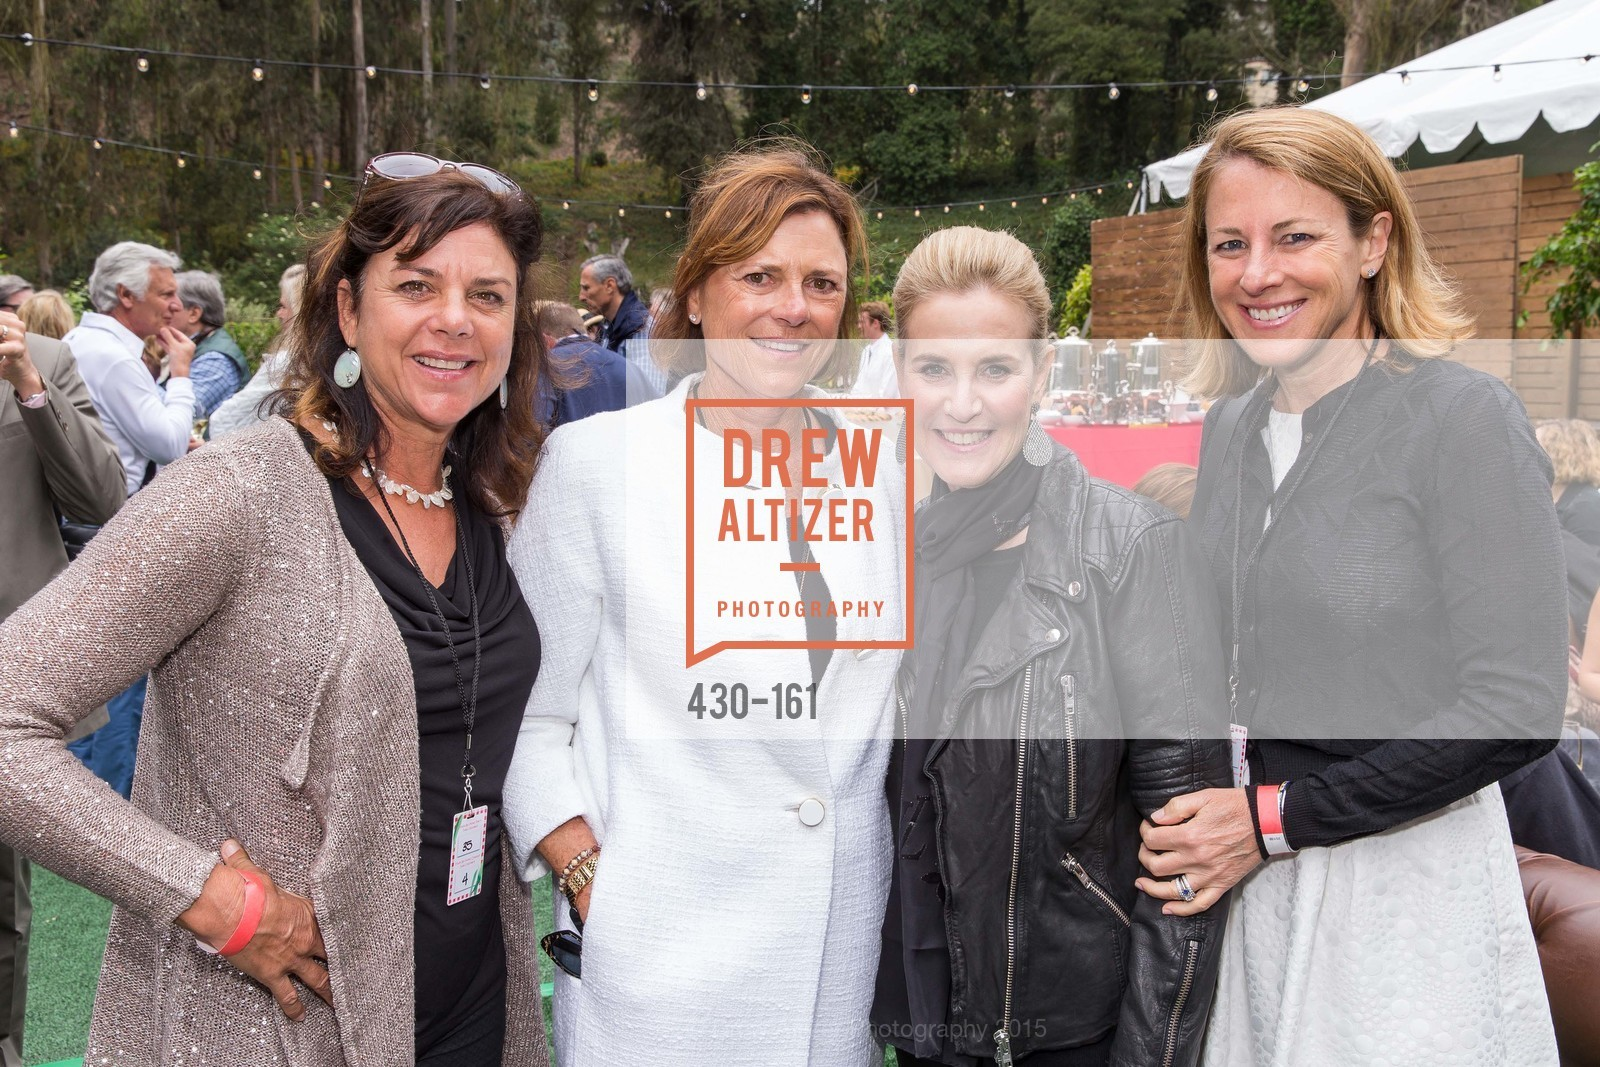 Connie Ring, Lisa Troedson, Lisa Goldman, Laura Hazlett, THE BIG PICNIC Kicking off  2015 Stern Grove Season, Stern Grove. 2750 19th Avenue, June 14th, 2015,Drew Altizer, Drew Altizer Photography, full-service agency, private events, San Francisco photographer, photographer california